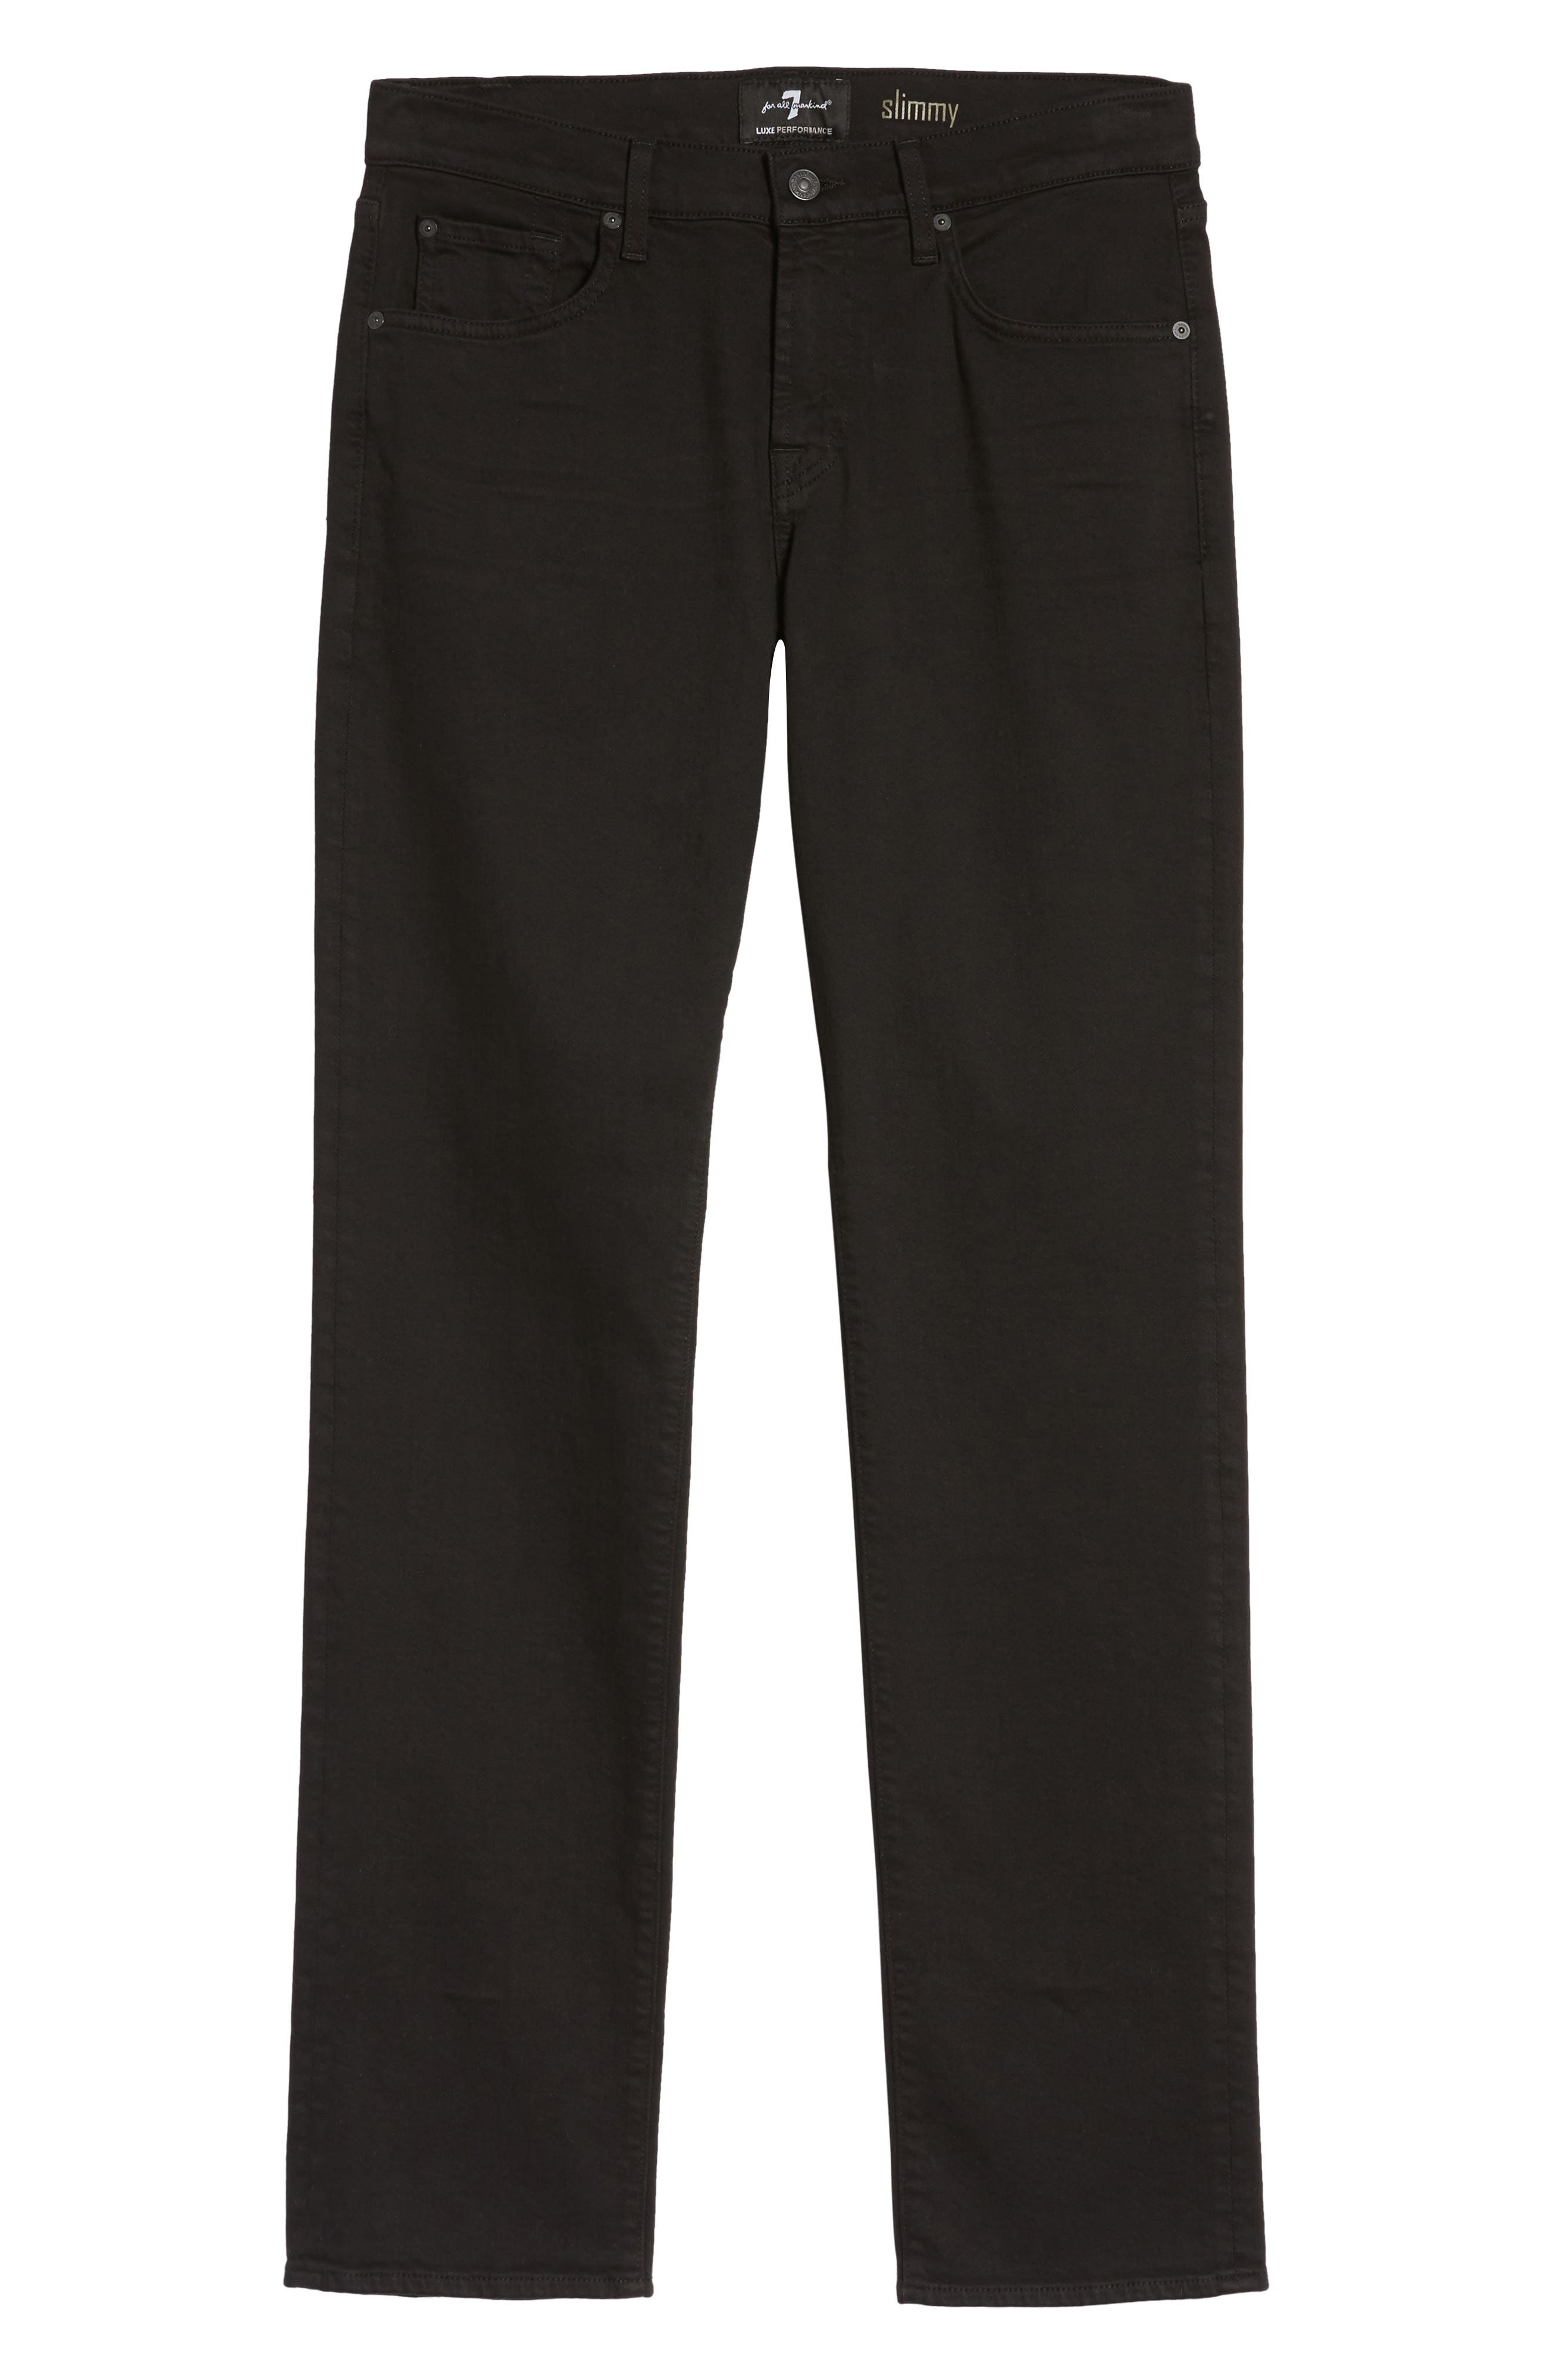 7 FOR ALL MANKIND<SUP>®</SUP>, Luxe Performance - Slimmy Slim Fit Jeans, Alternate thumbnail 6, color, ANNEX BLACK